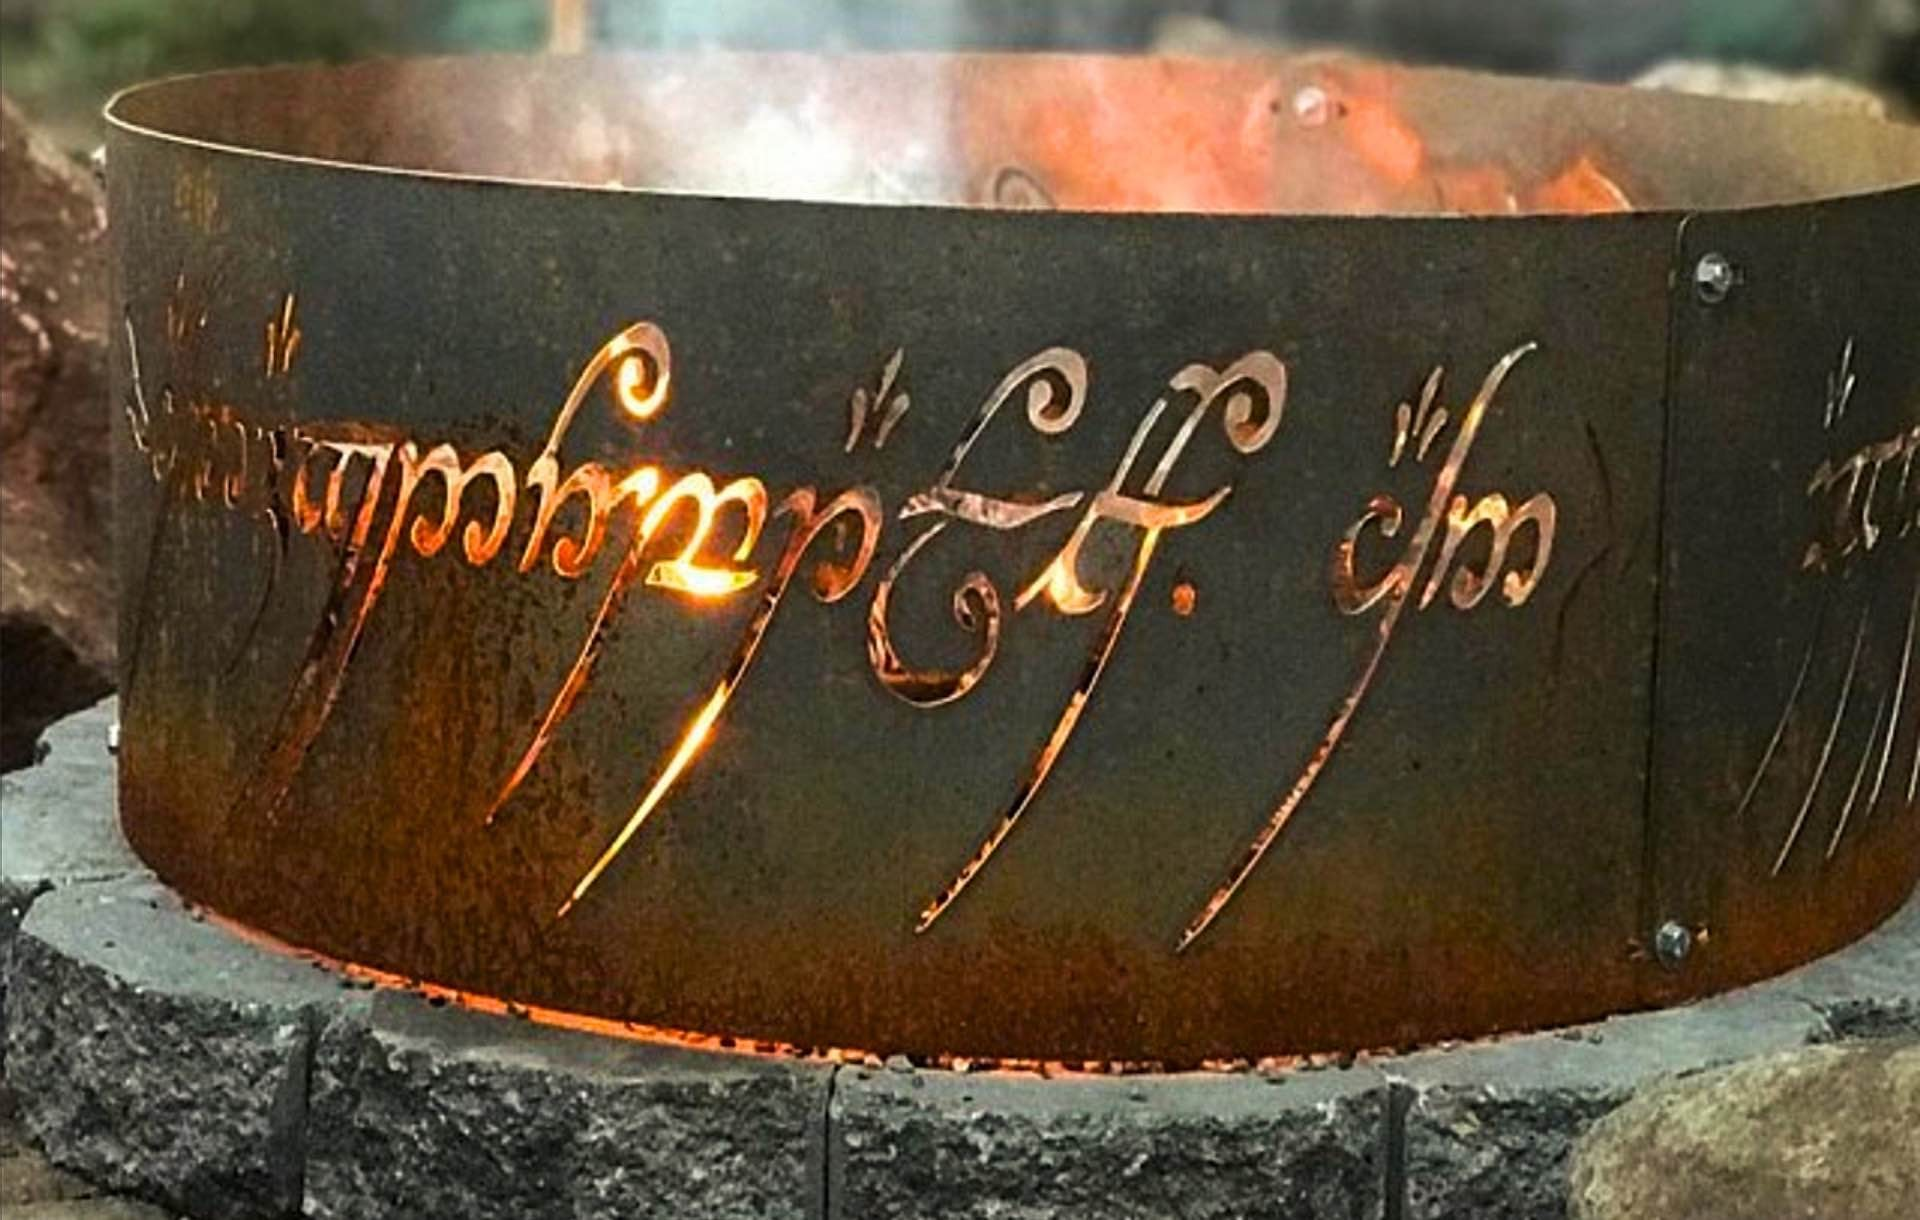 lord-of-the-rings-fire-ring-to-rule-them-all-closeup